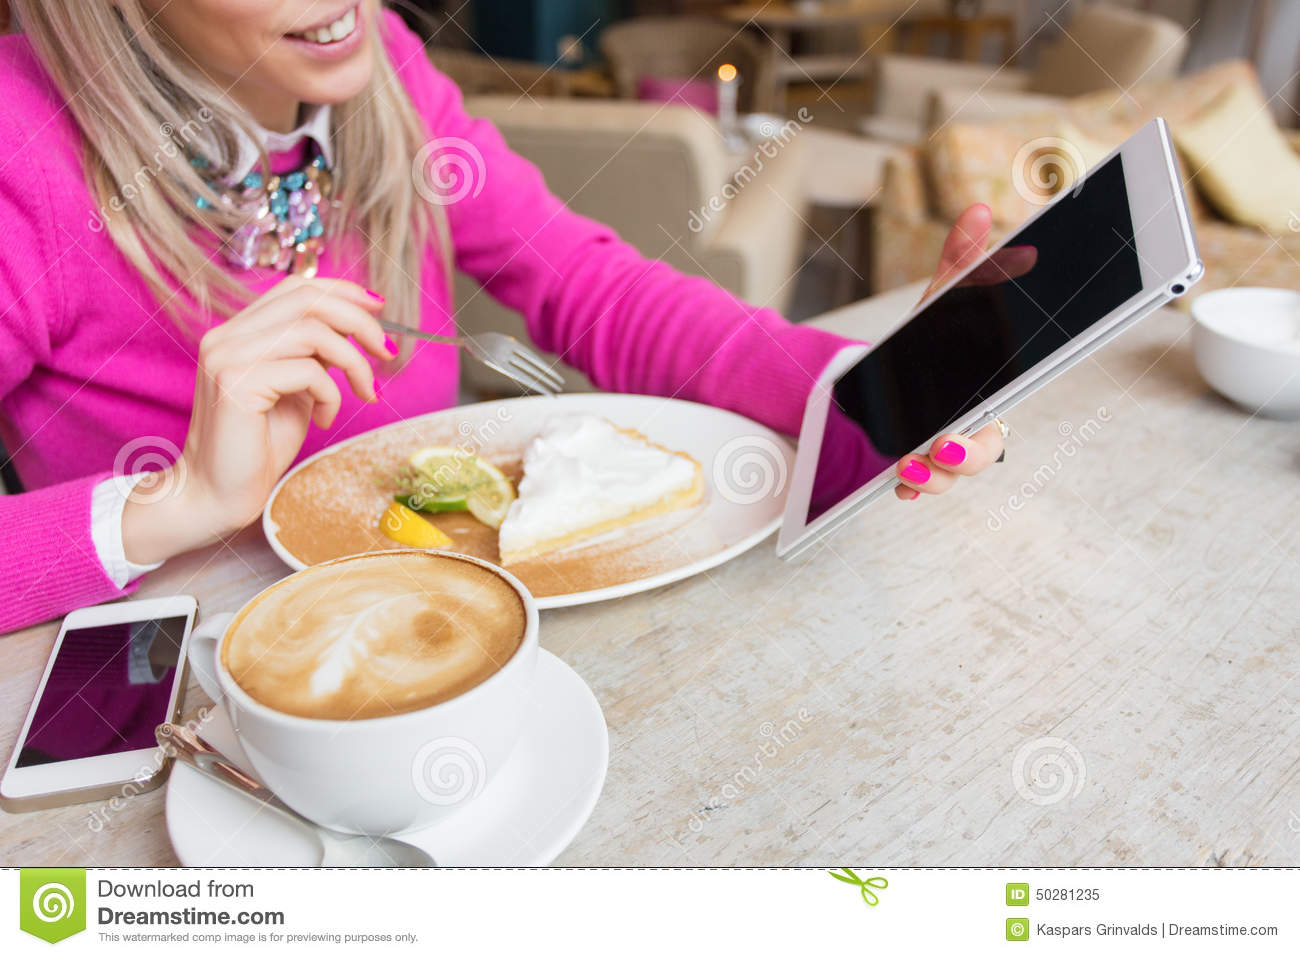 Woman using tablet computer while having cake and coffee in cafe